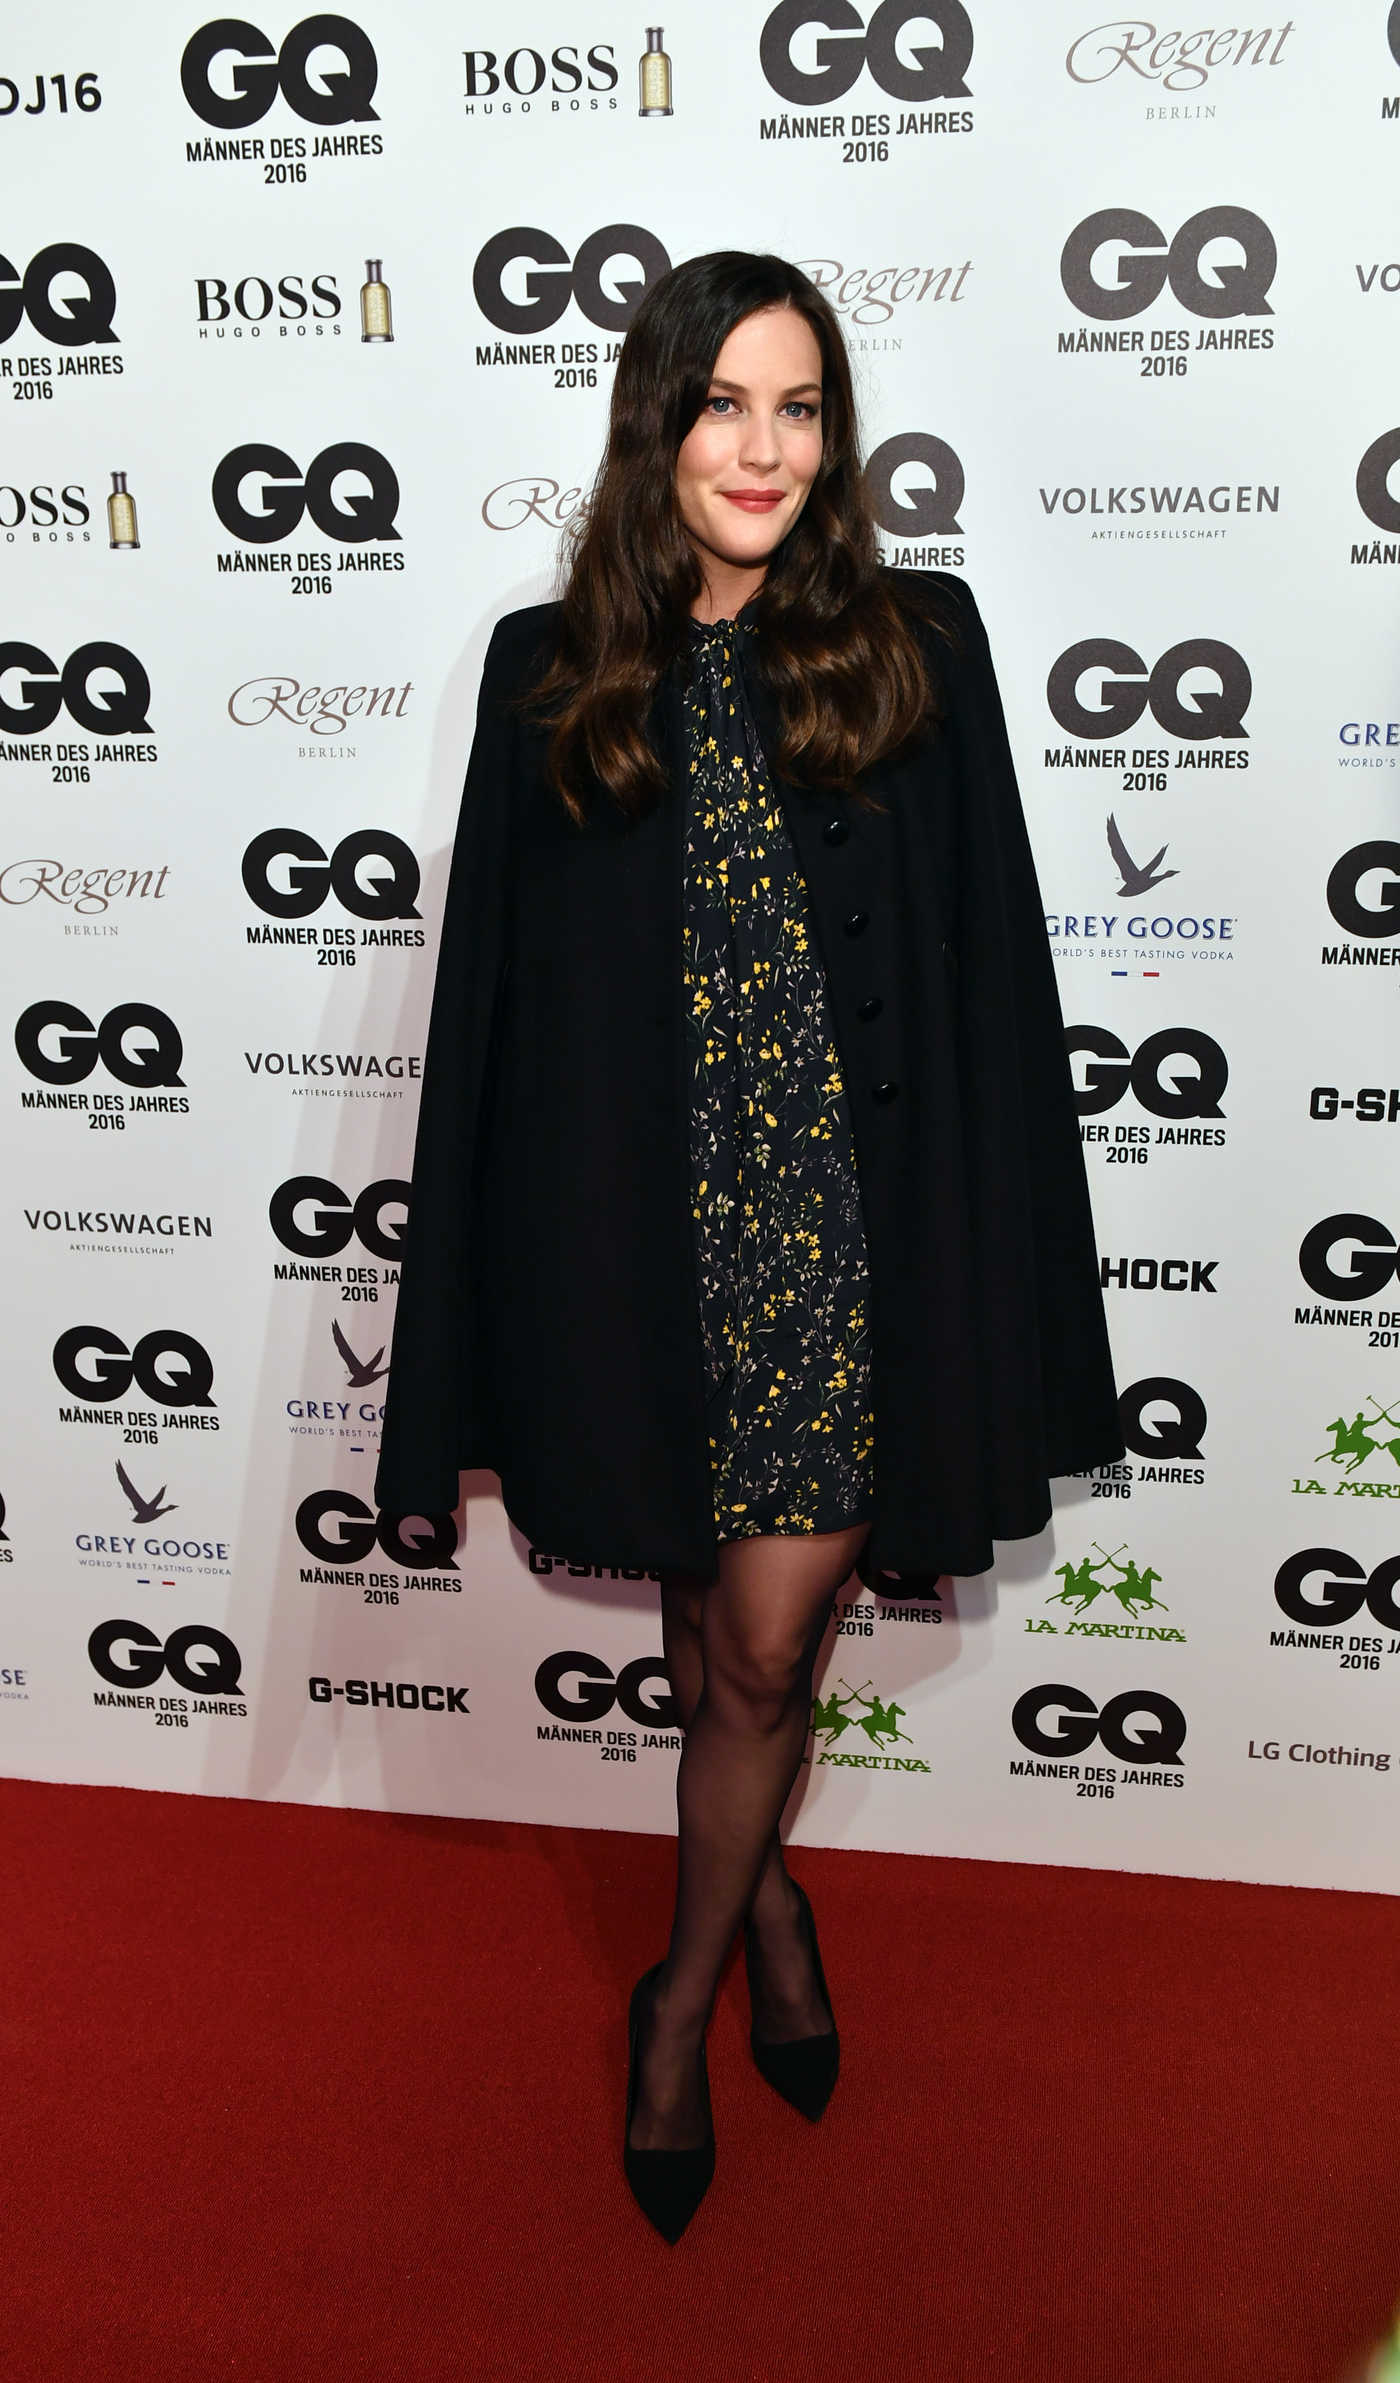 Liv Tyler at the GQ Men of the Year Awards in Berlin 11/10/2016